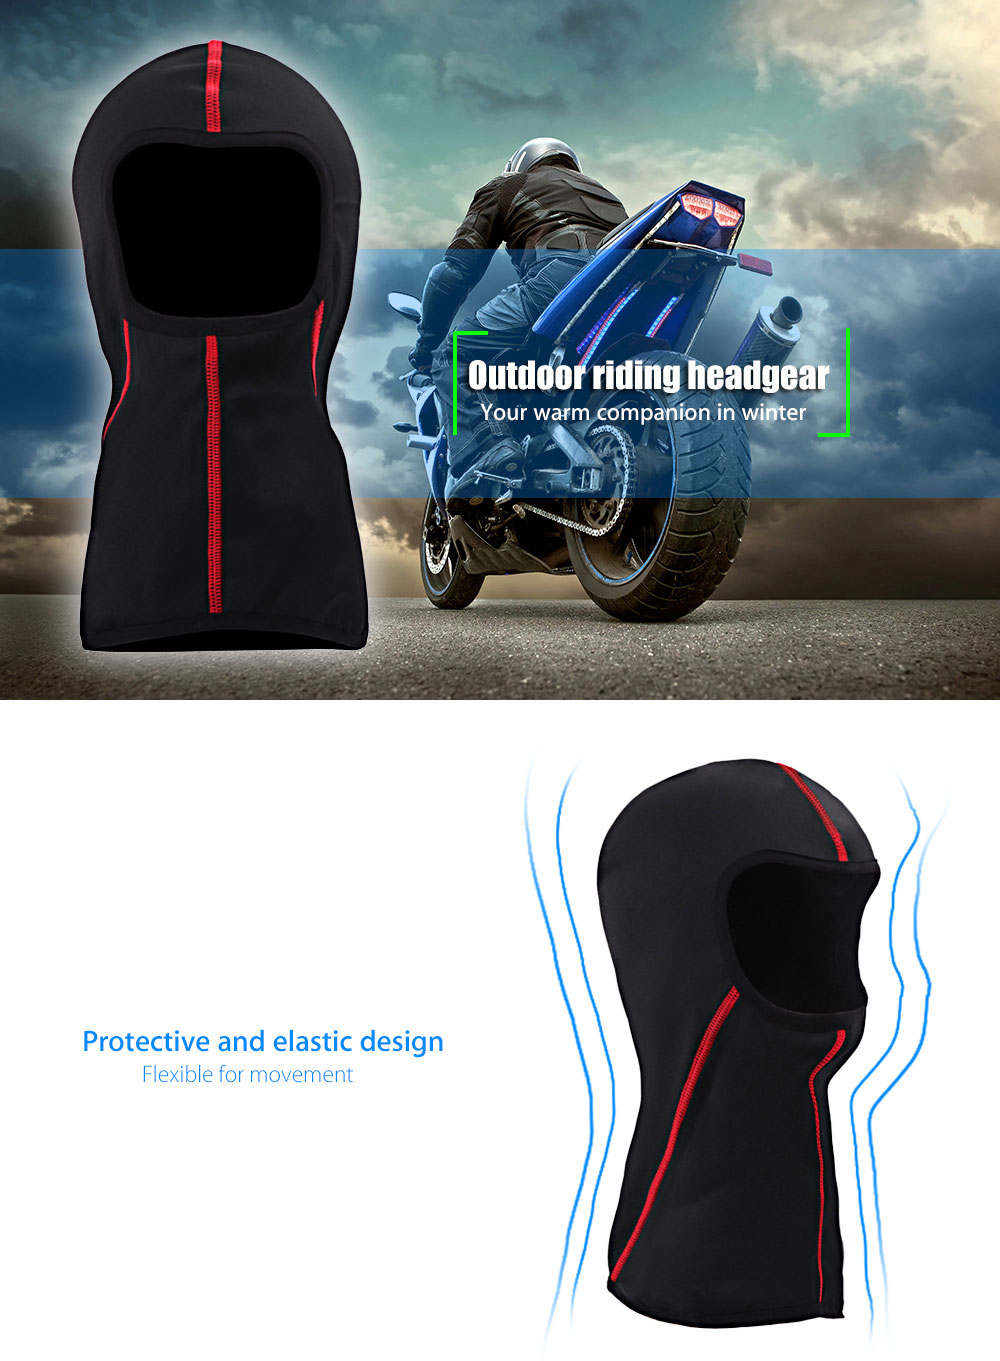 SALETU Breathable Outdoor Sports Riding Headgear Motorcycle Cycling Protect Full Face Mask